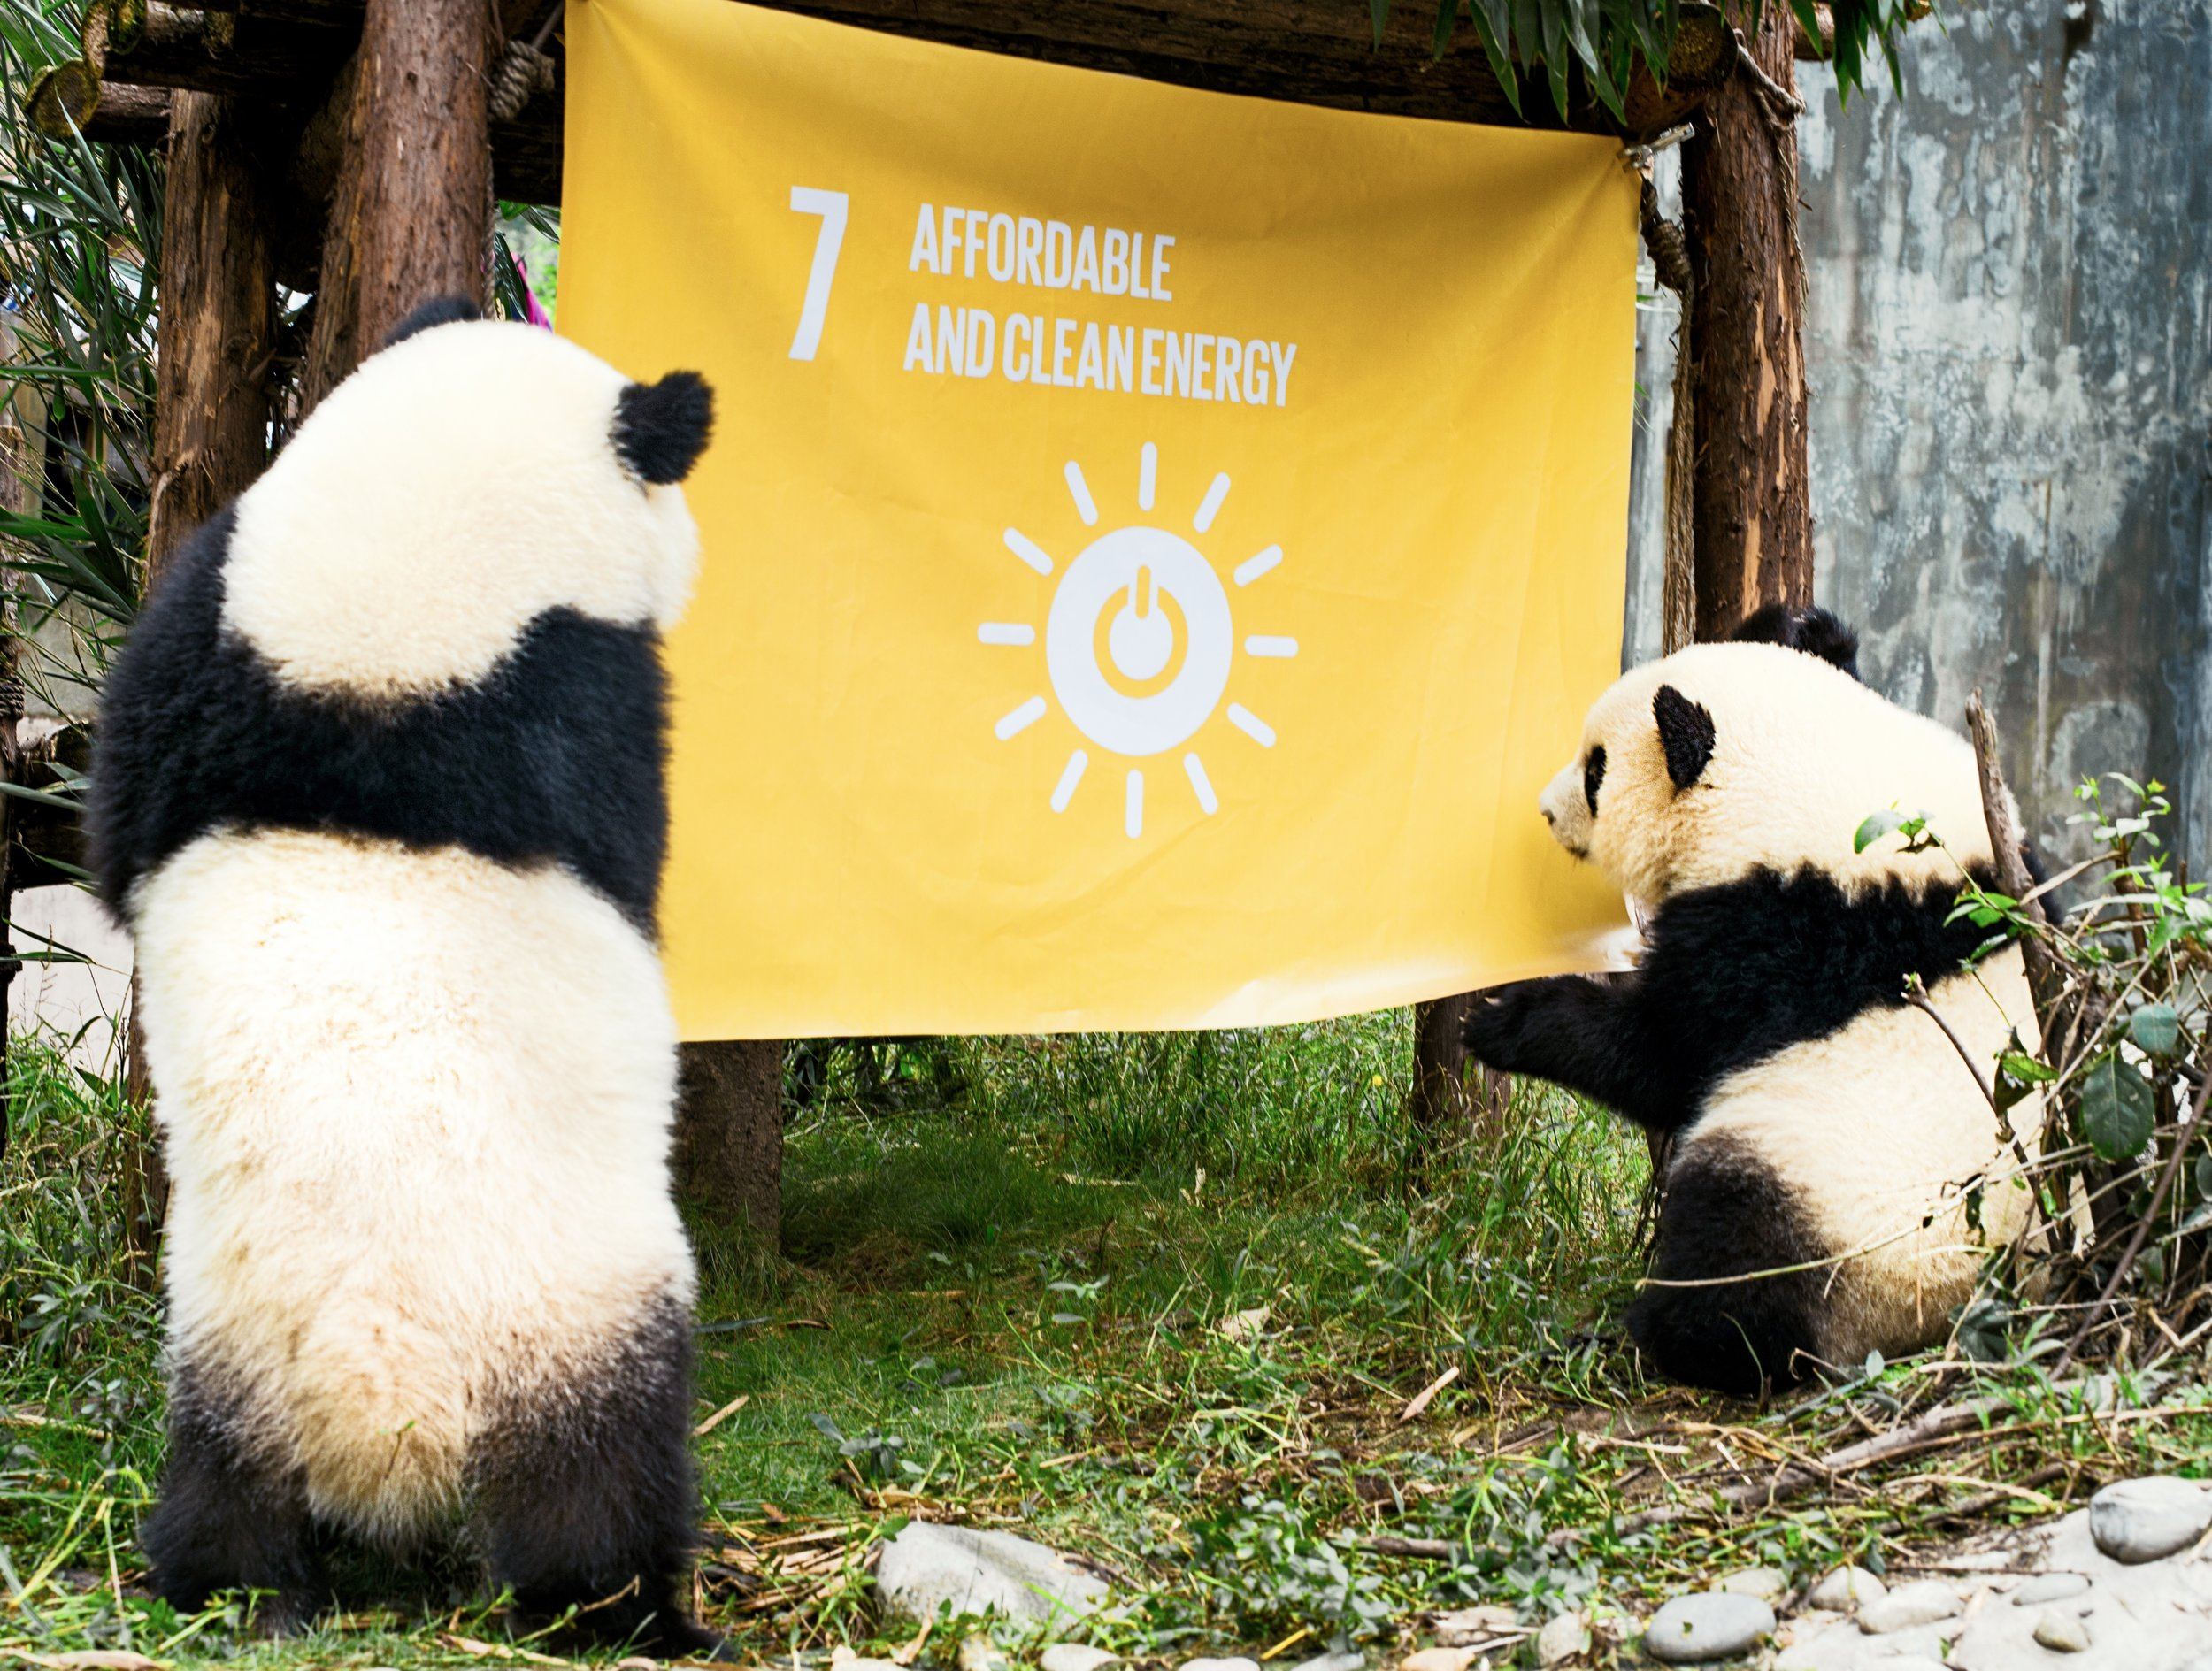 Qiciao and Qixi, a pair of giant panda twins, inspect a flag to represent Goal 7, Affordable and Clean Energy, raised at the Chengdu Research Base of Giant Panda Breeding in China, to support the UN Global Goals for Sustainable Development.Credit:Mr. Yuan Tao and Ms. Yan Lu